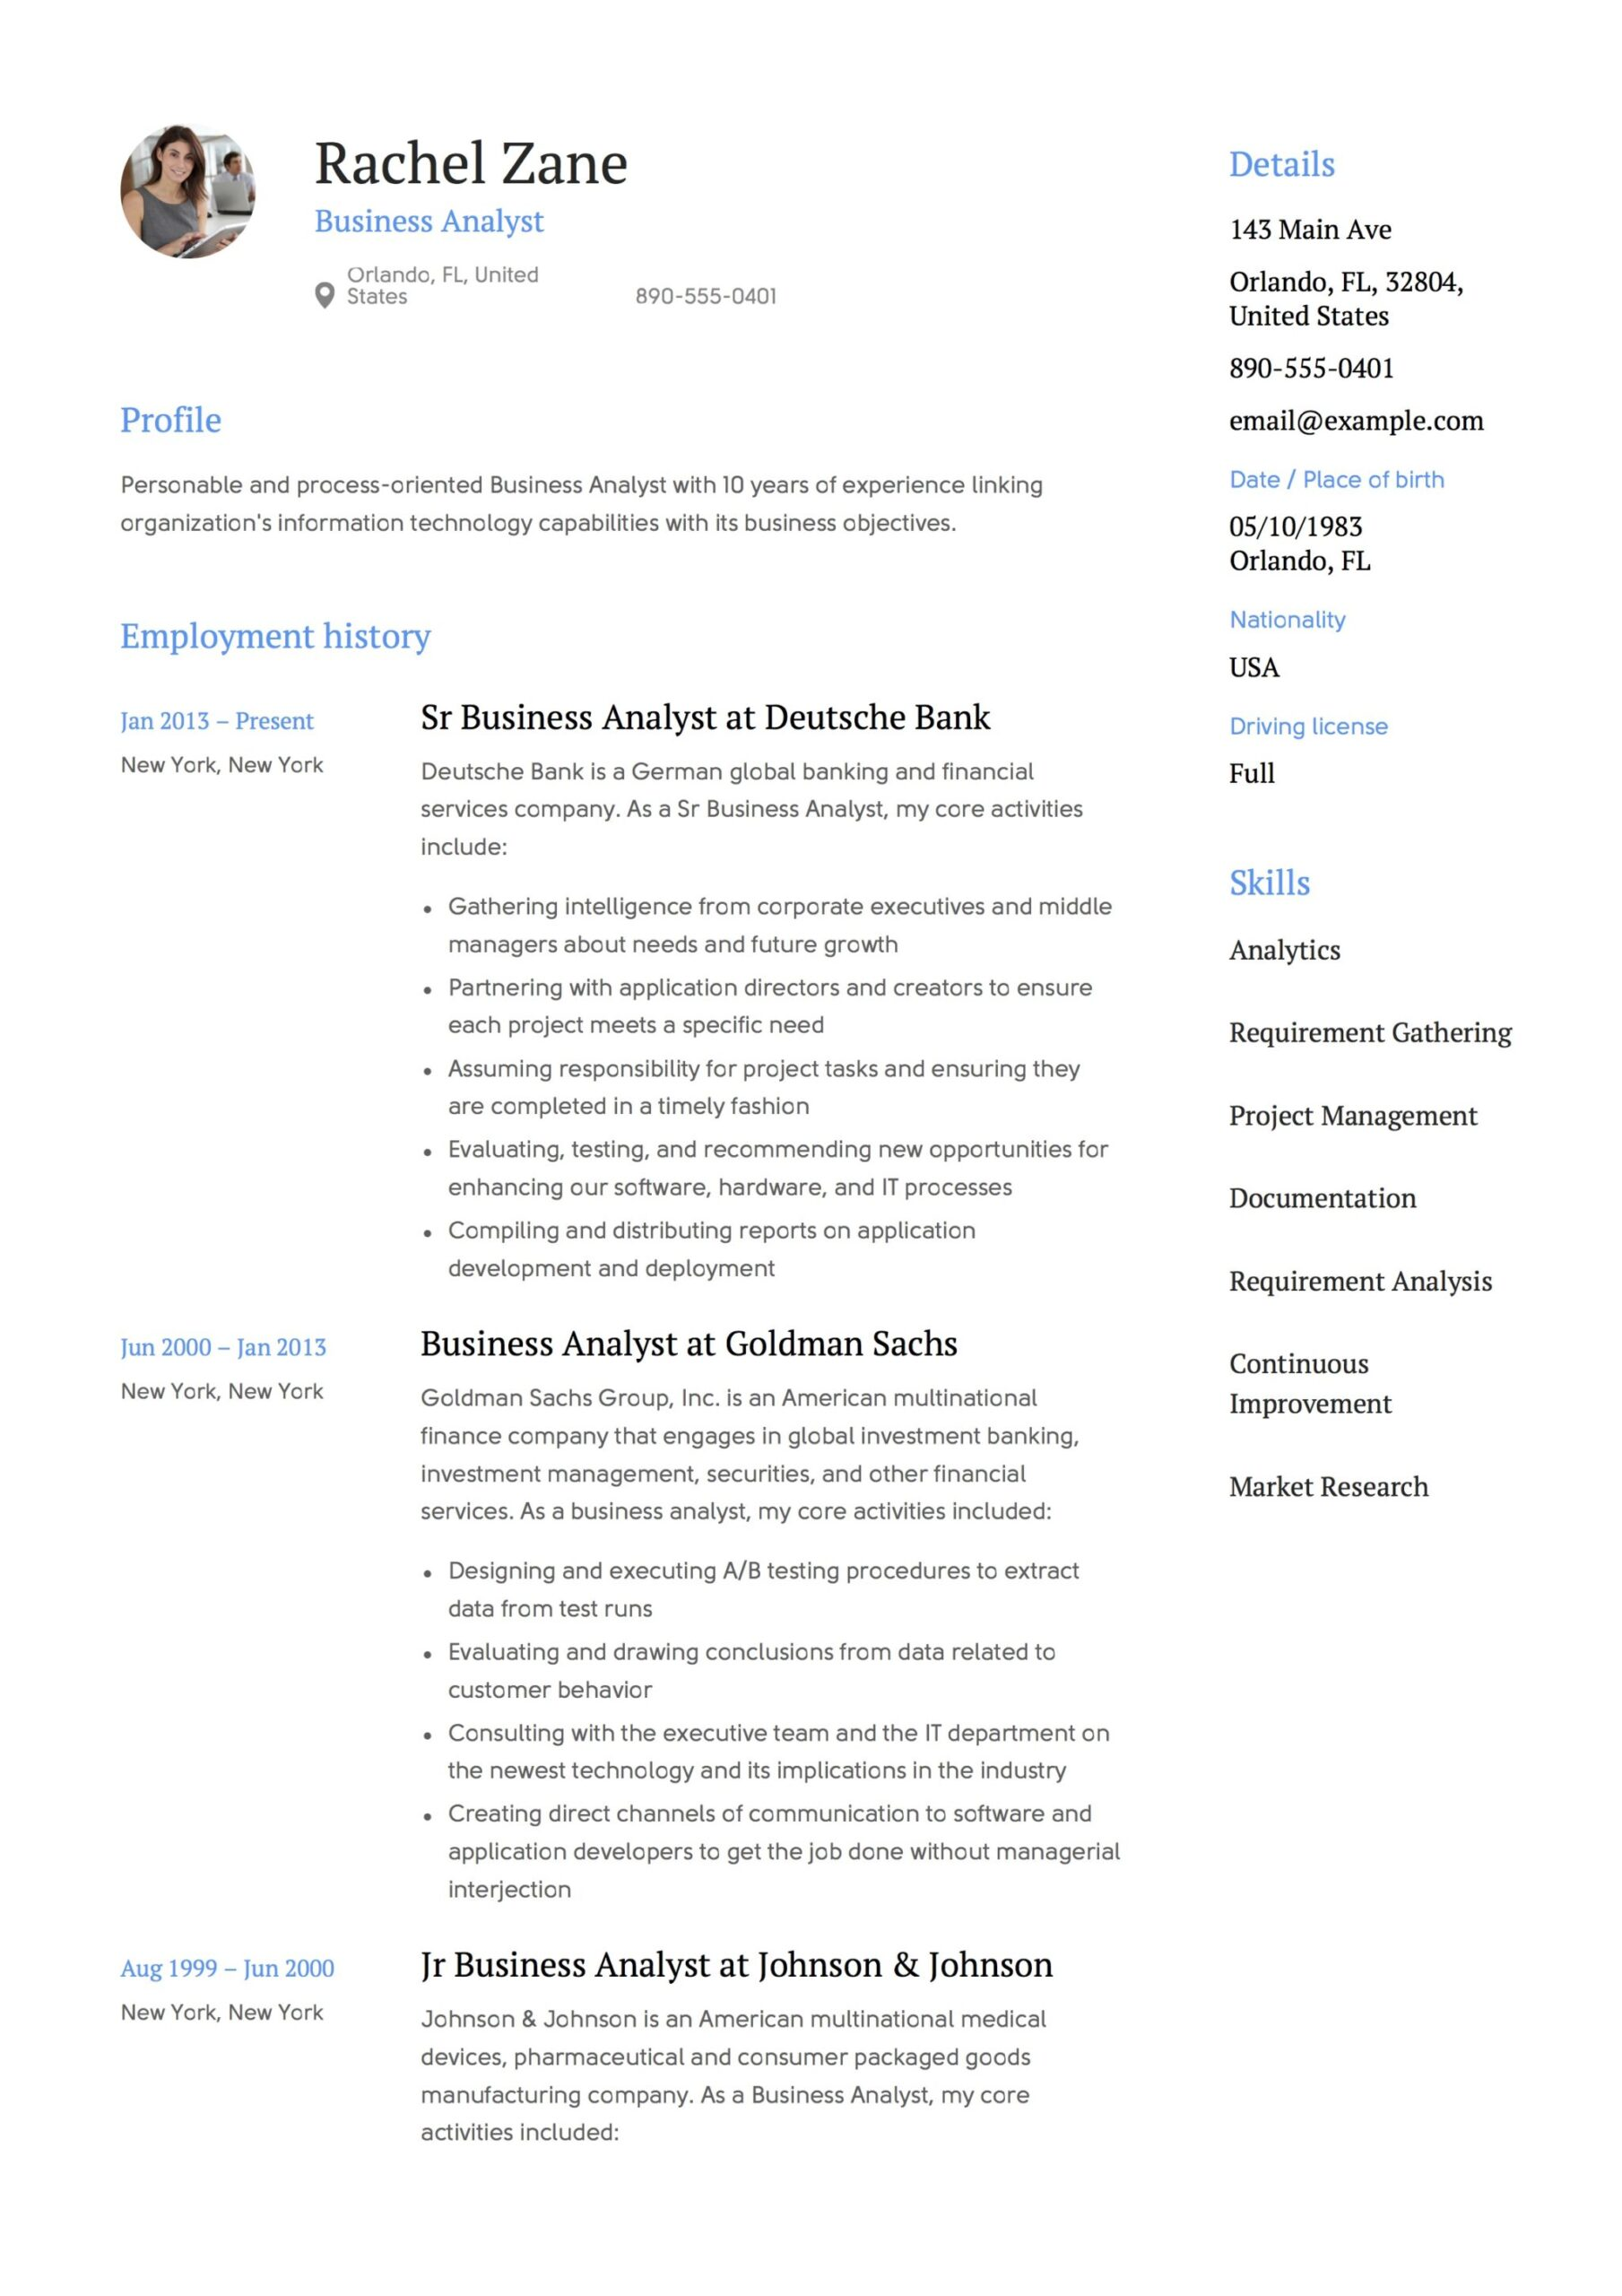 business analyst resume guide templates pdf free downloads format for fresher sample vice Resume Resume Format For Business Analyst Fresher